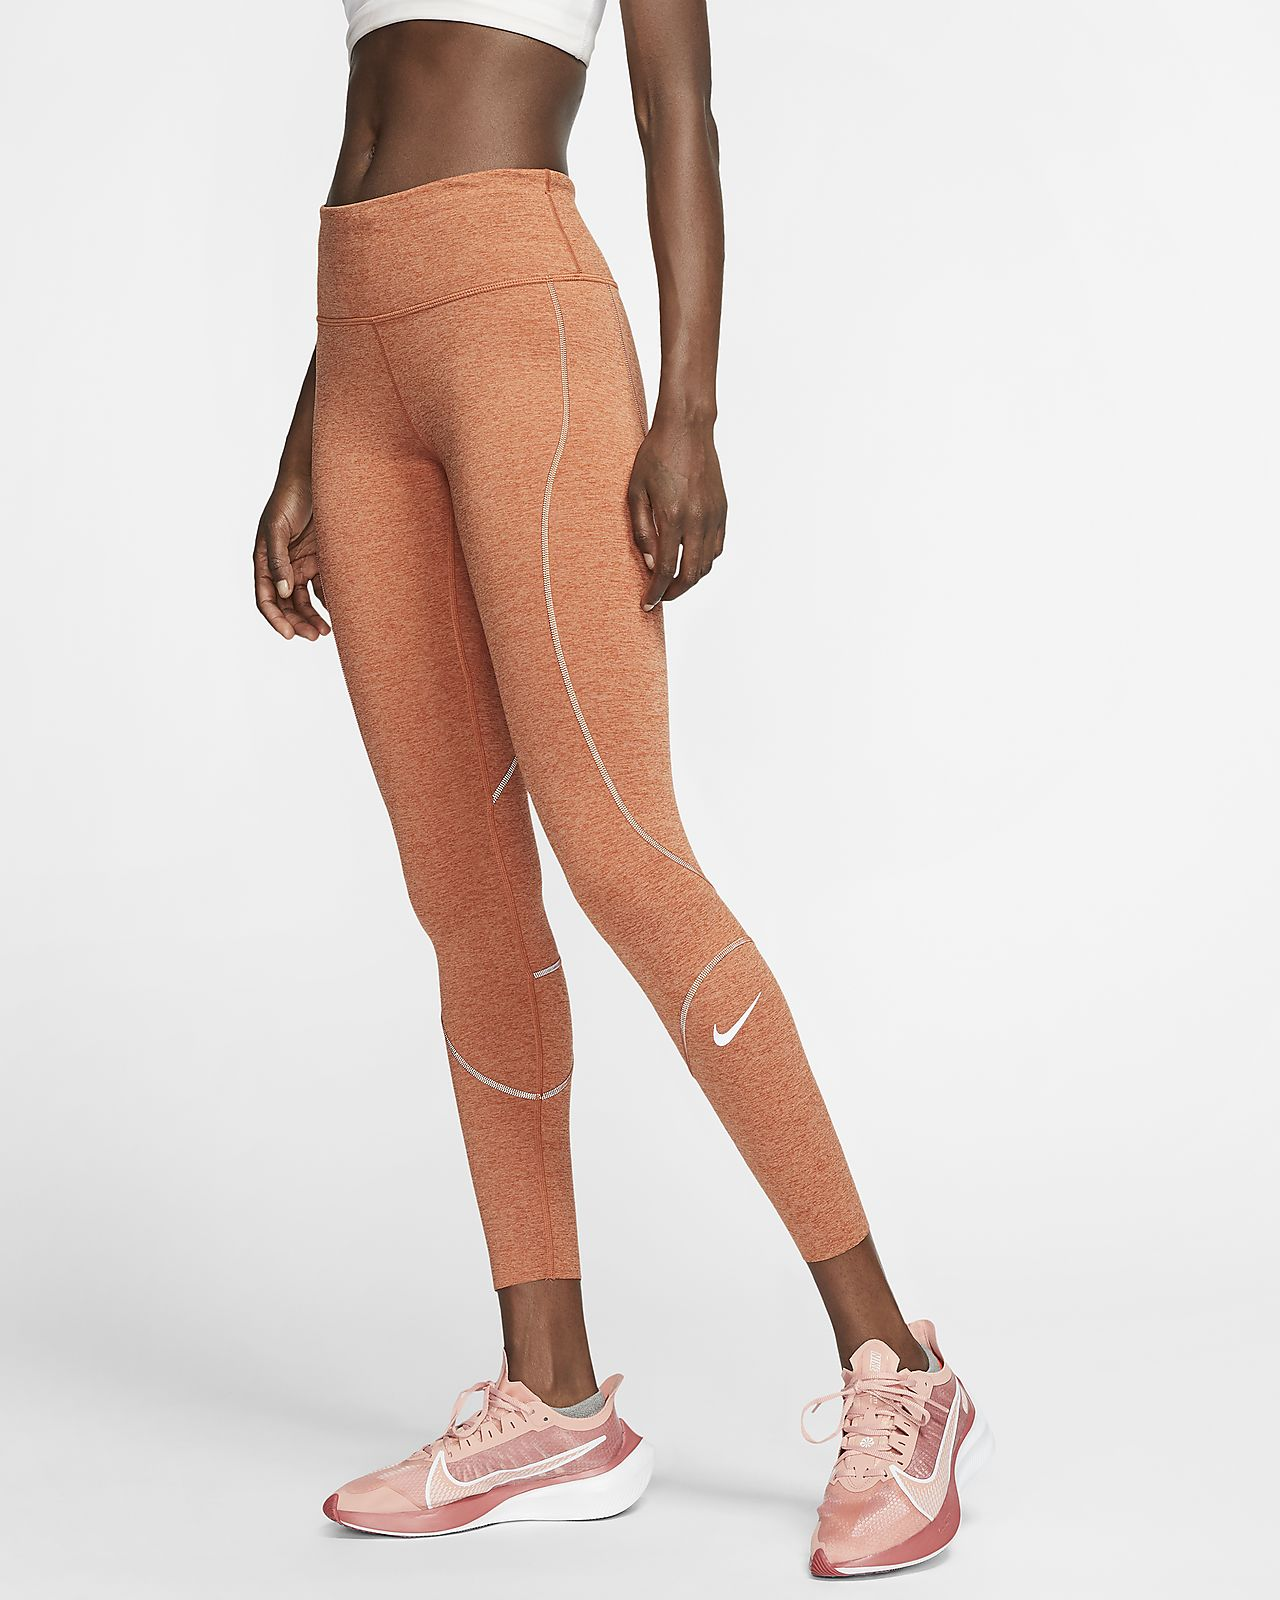 Nike Epic Lux Lauf-Tights für Damen